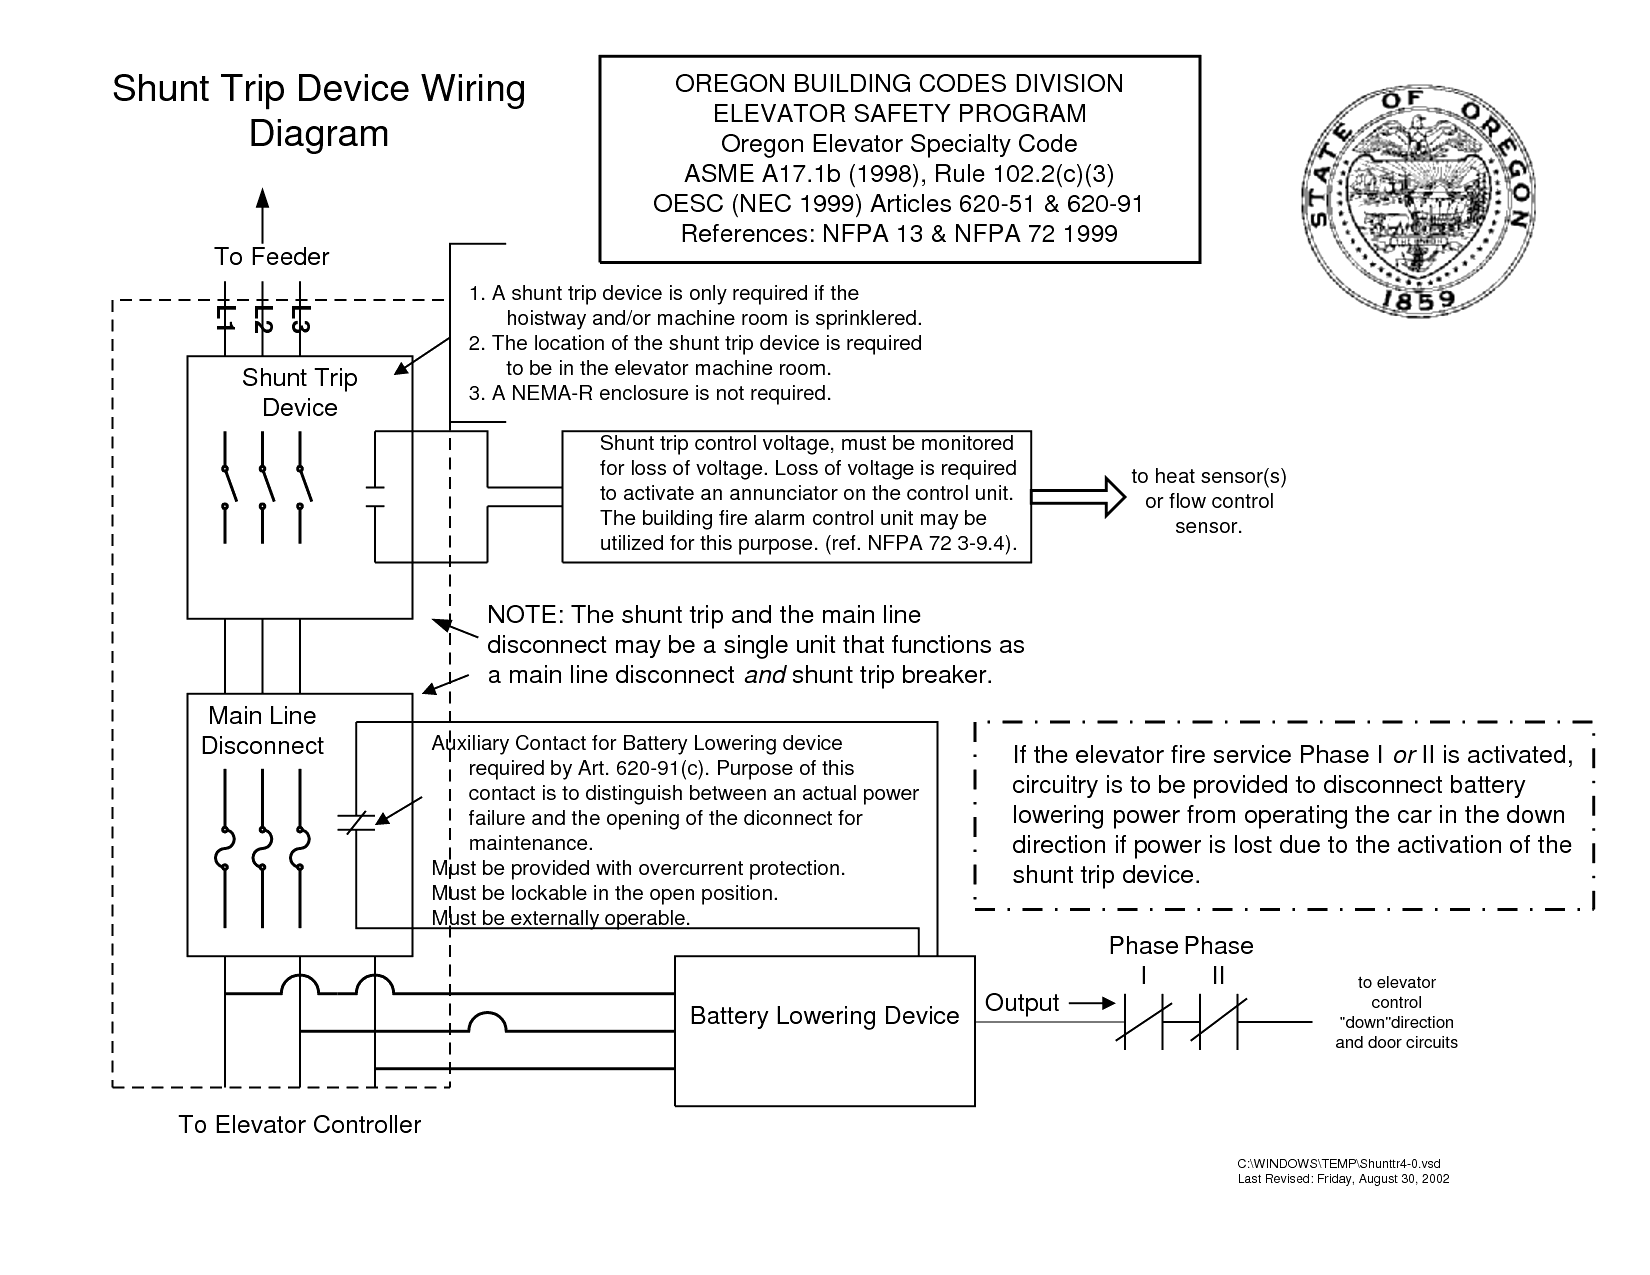 Siemens Shunt Trip Breaker Wiring Diagram from static-resources.imageservice.cloud